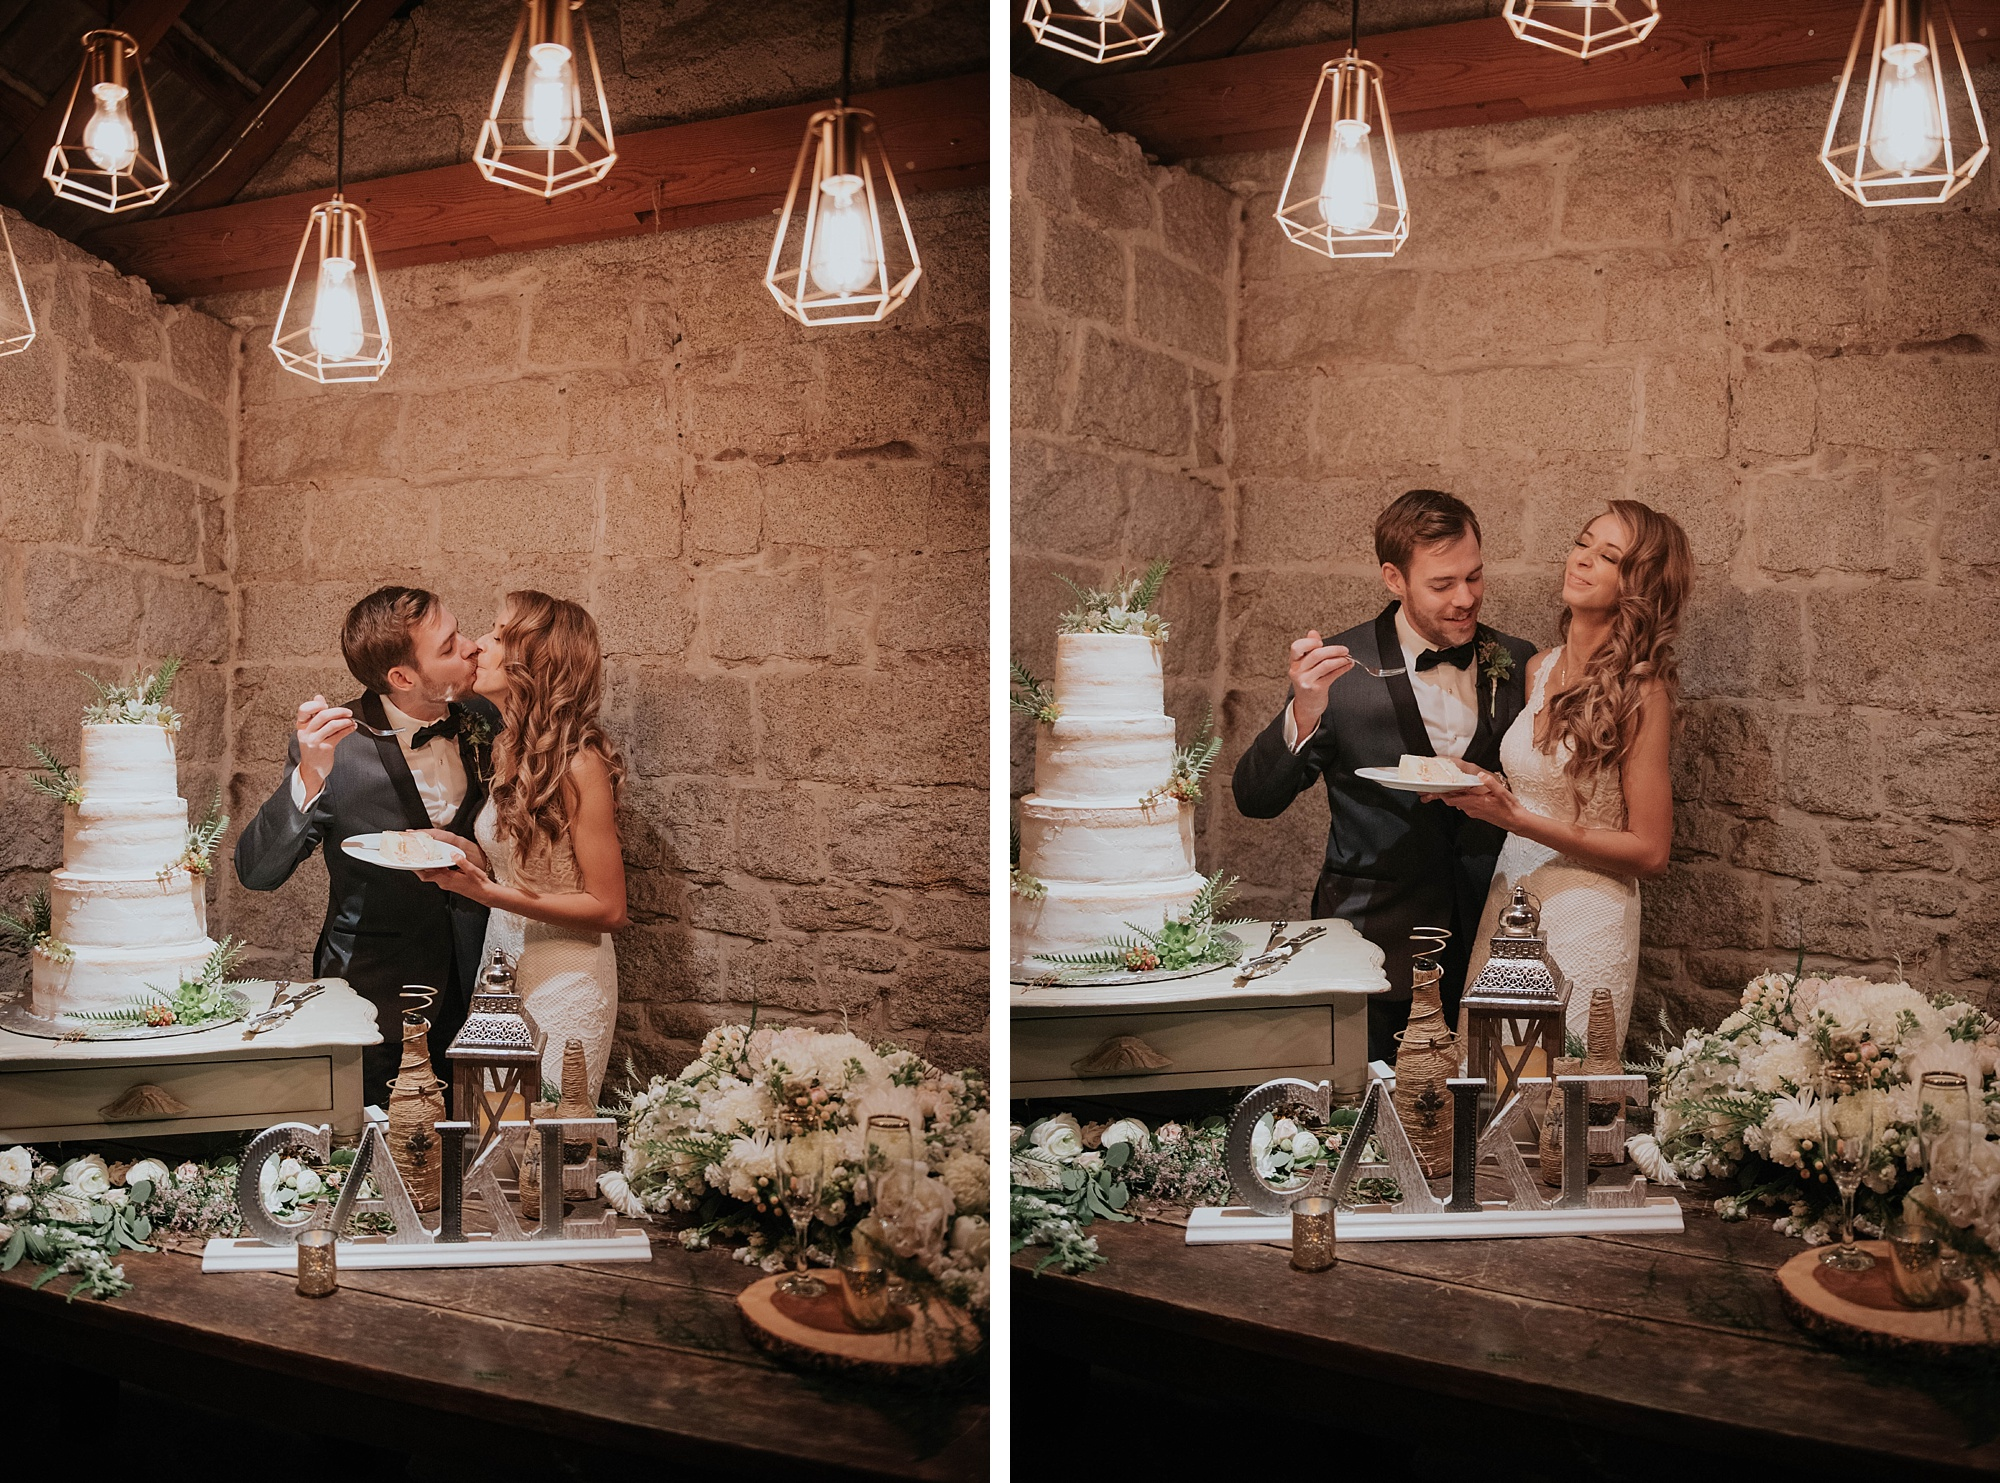 classic and modern styled bride and groom cut cake in cute stone cottage wedding